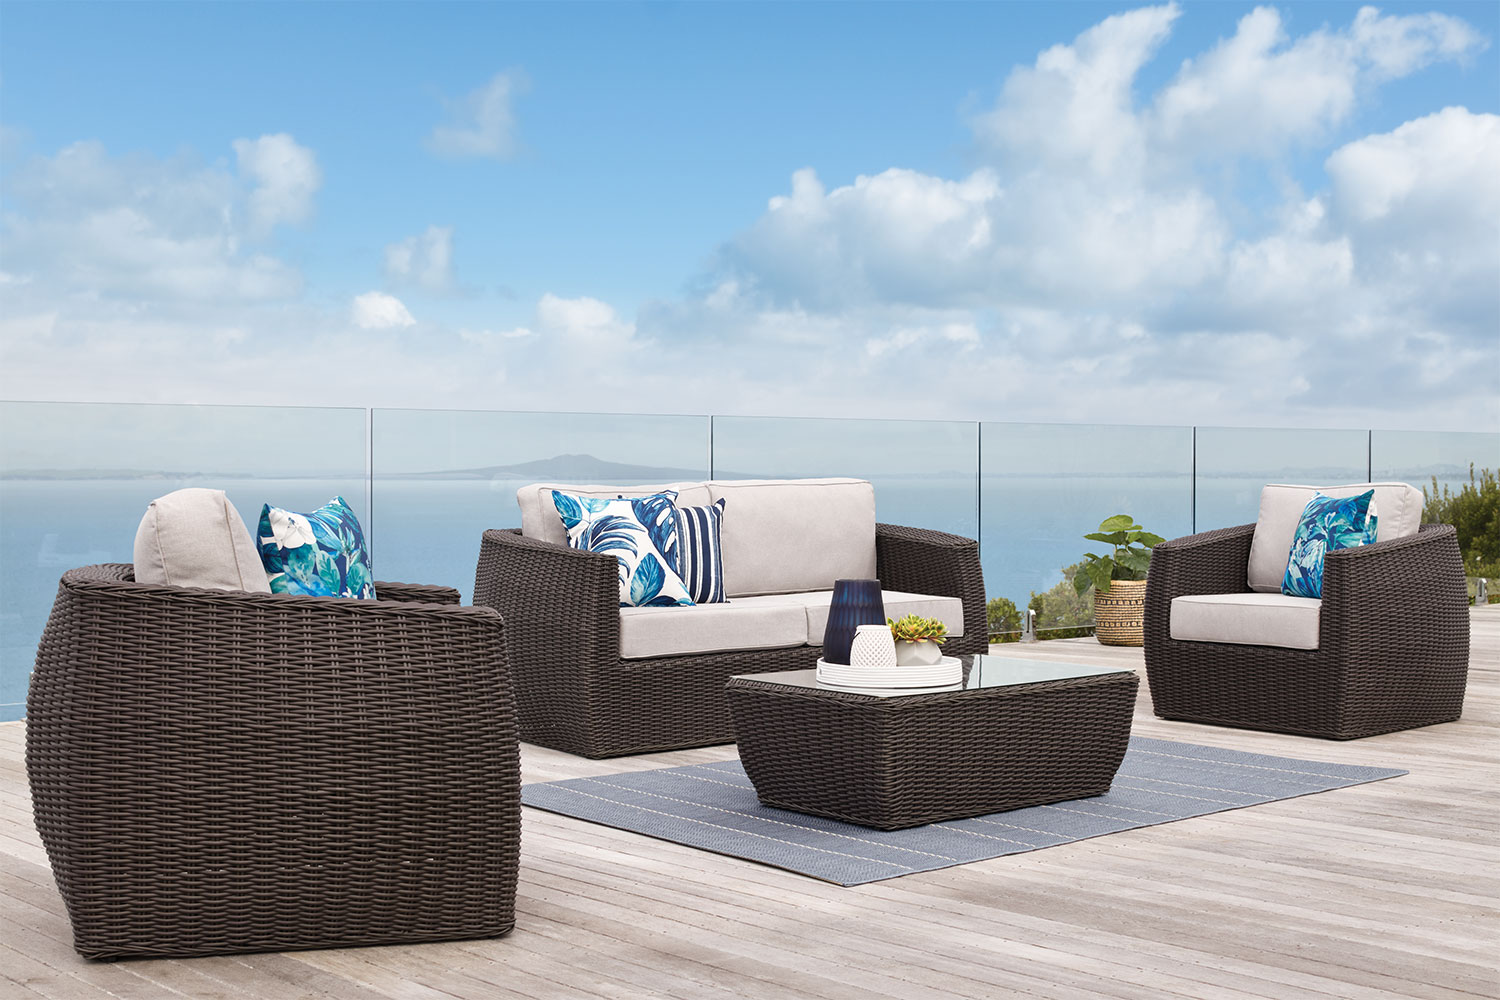 Ellie 4 Piece Outdoor Lounge Setting Harvey Norman New Zealand - Outdoor Wicker Furniture Clearance Nz